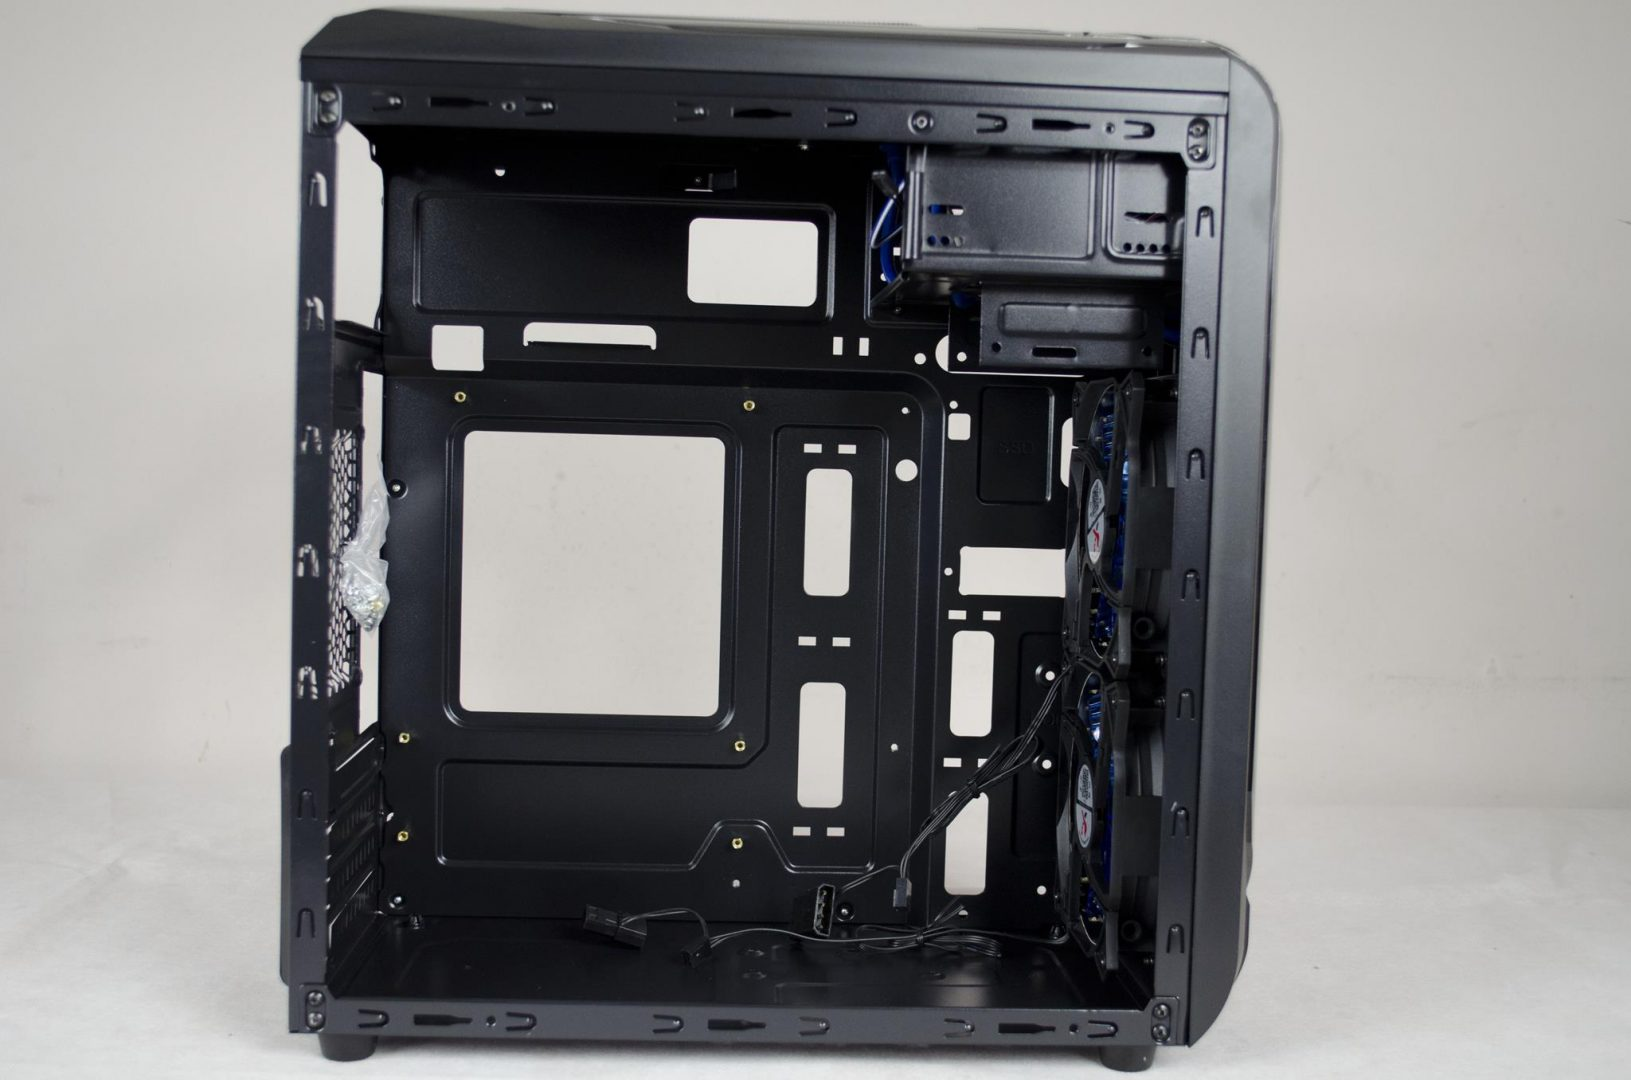 X2 SPITZER 22 PC Case Review_7